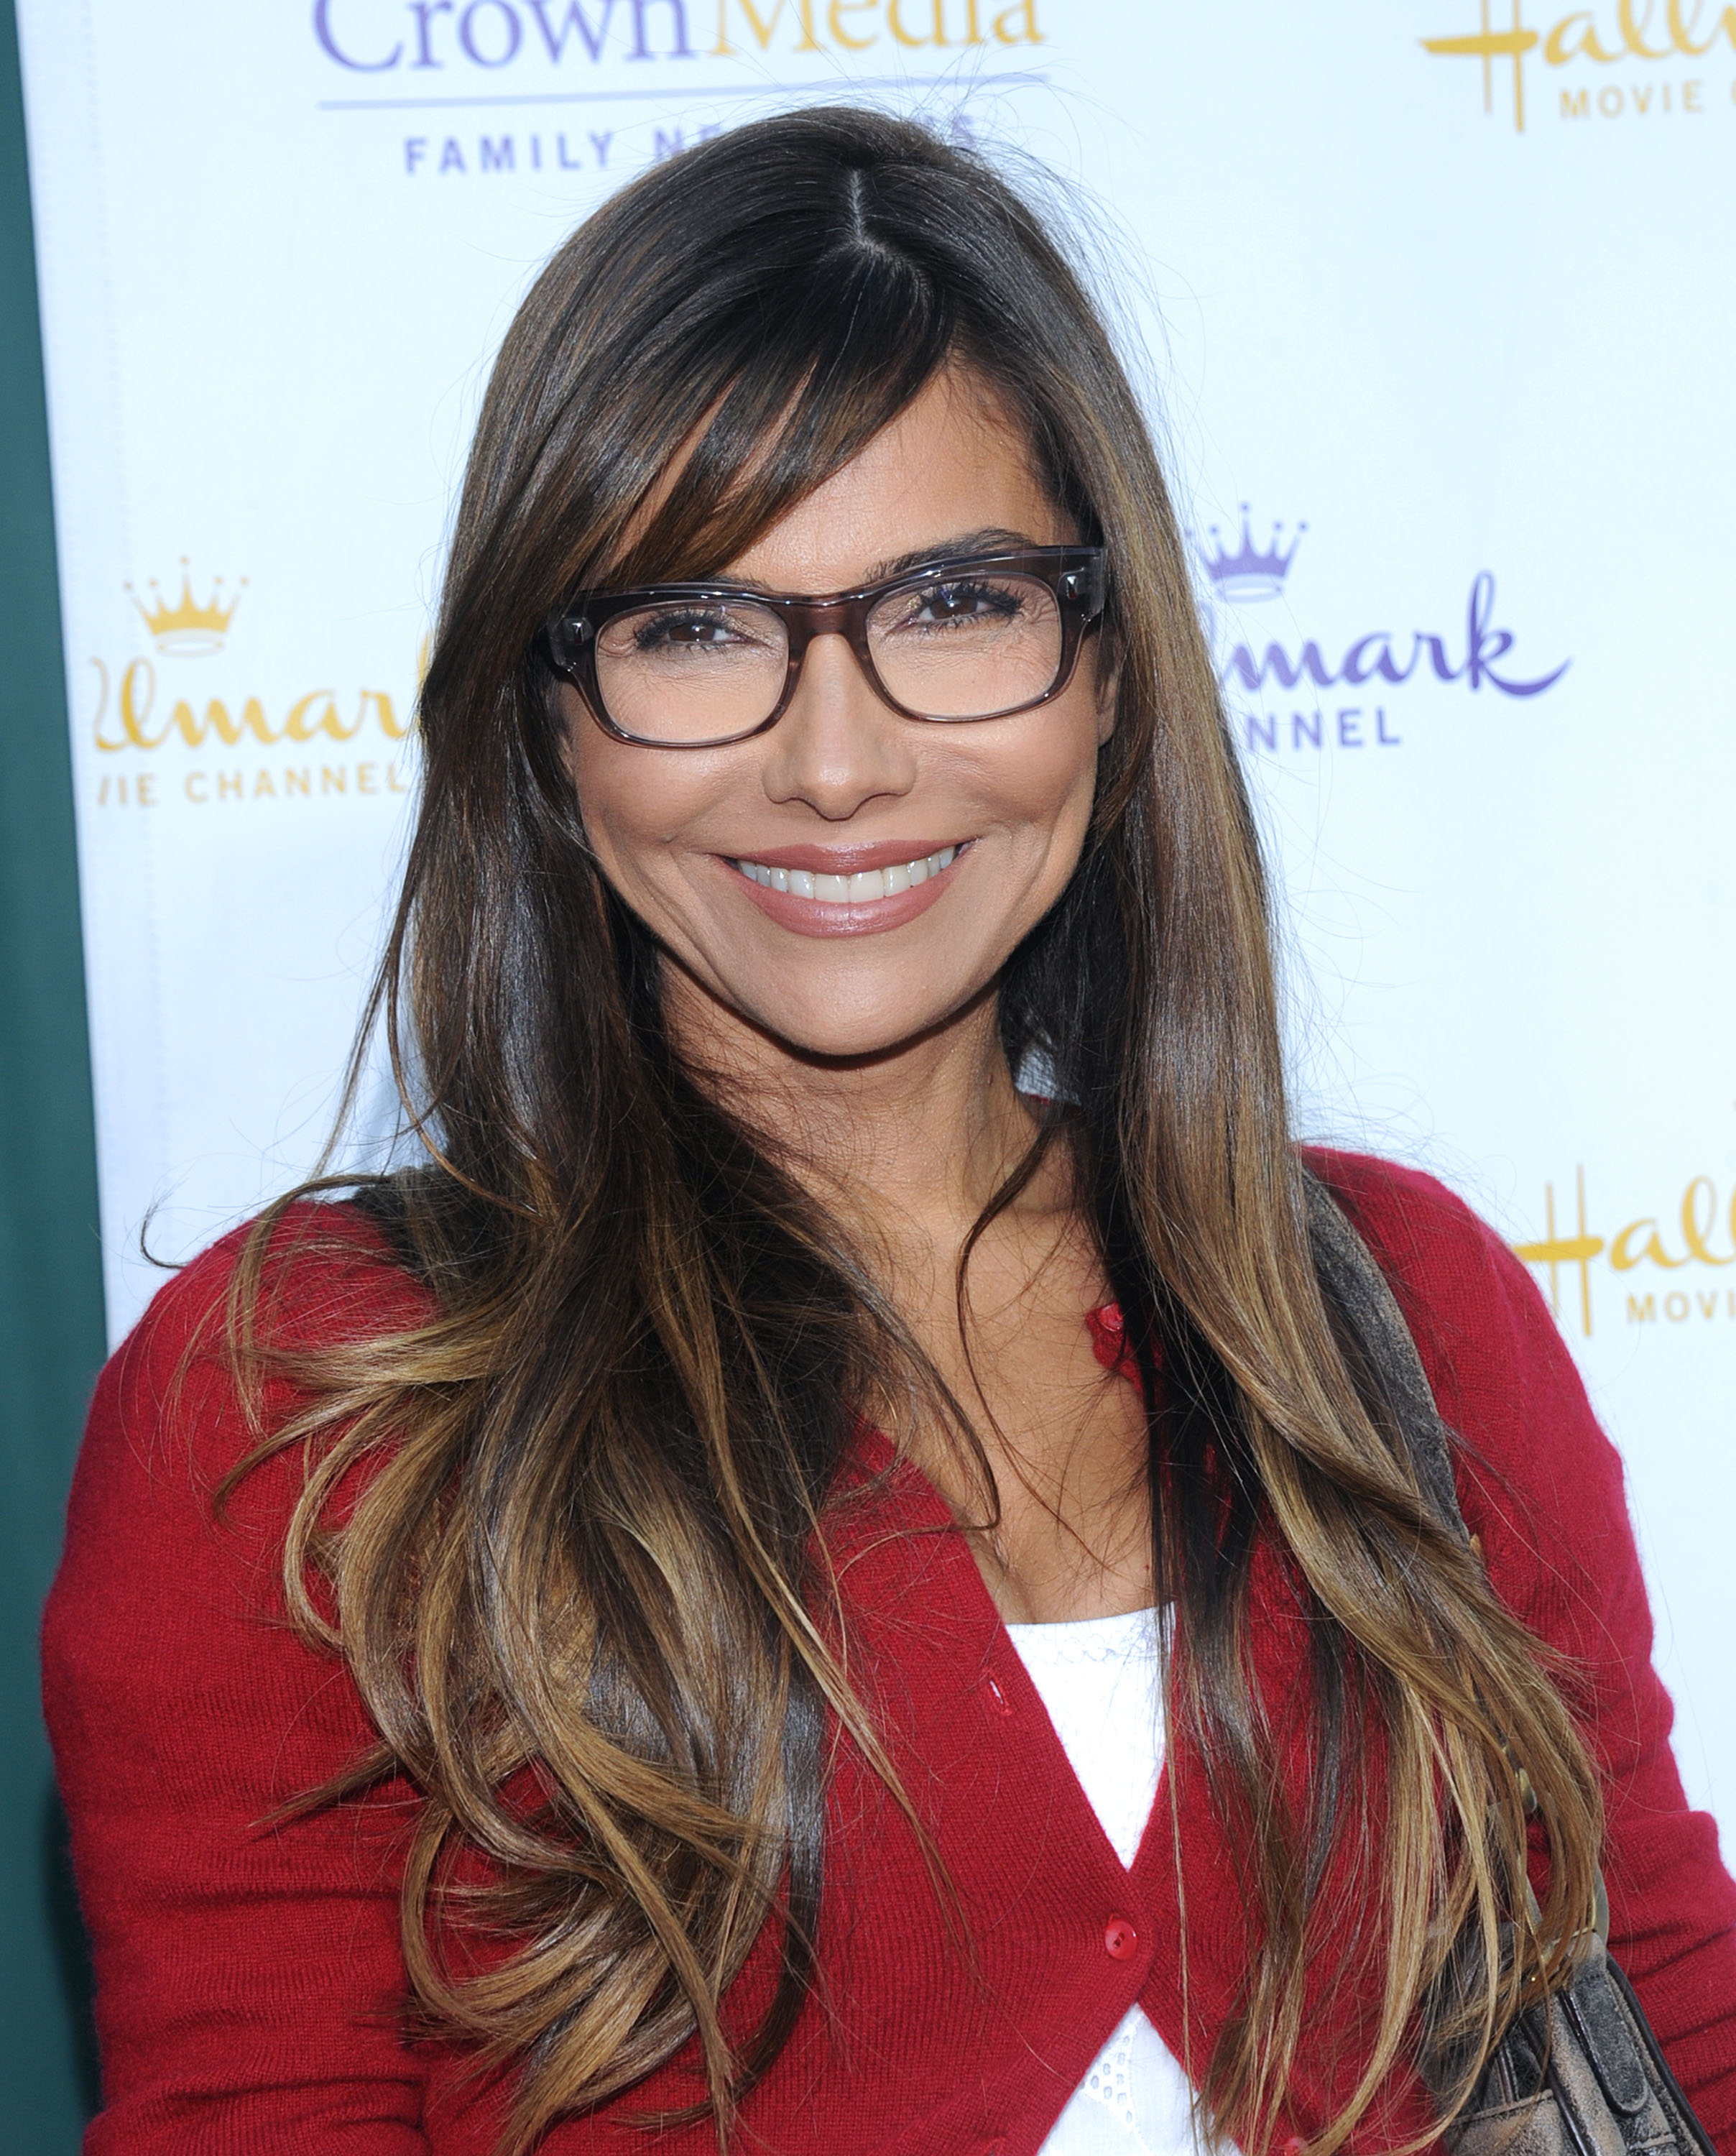 Vanessa Marcil smiling. She is wearing red shirt and and glasses